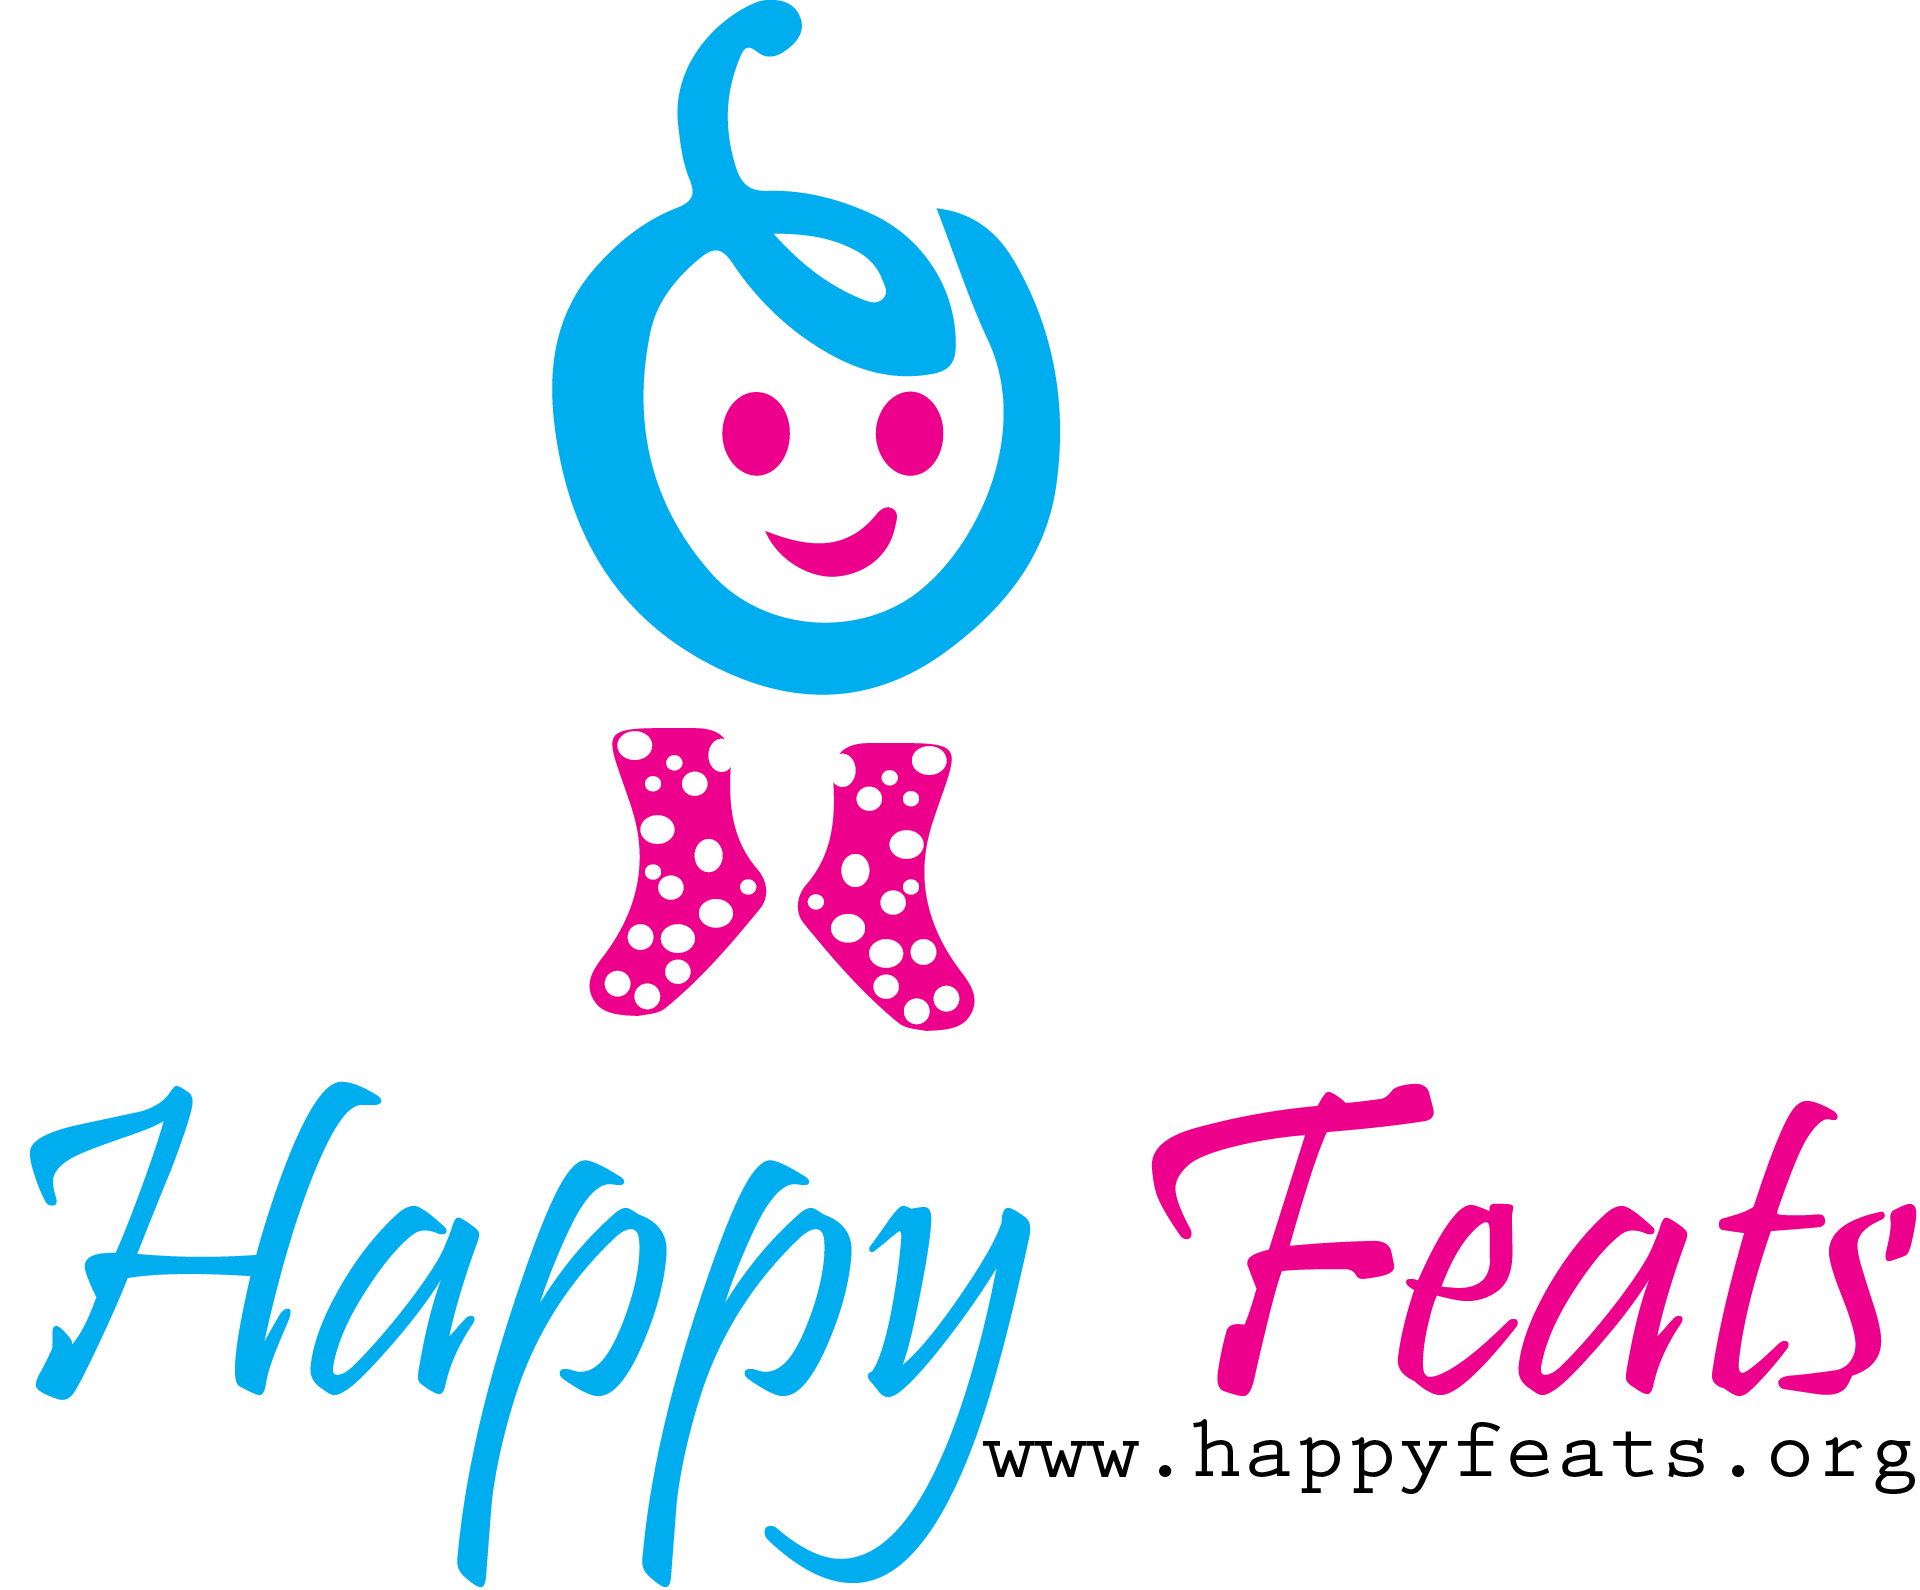 Happy Feats, Inc.